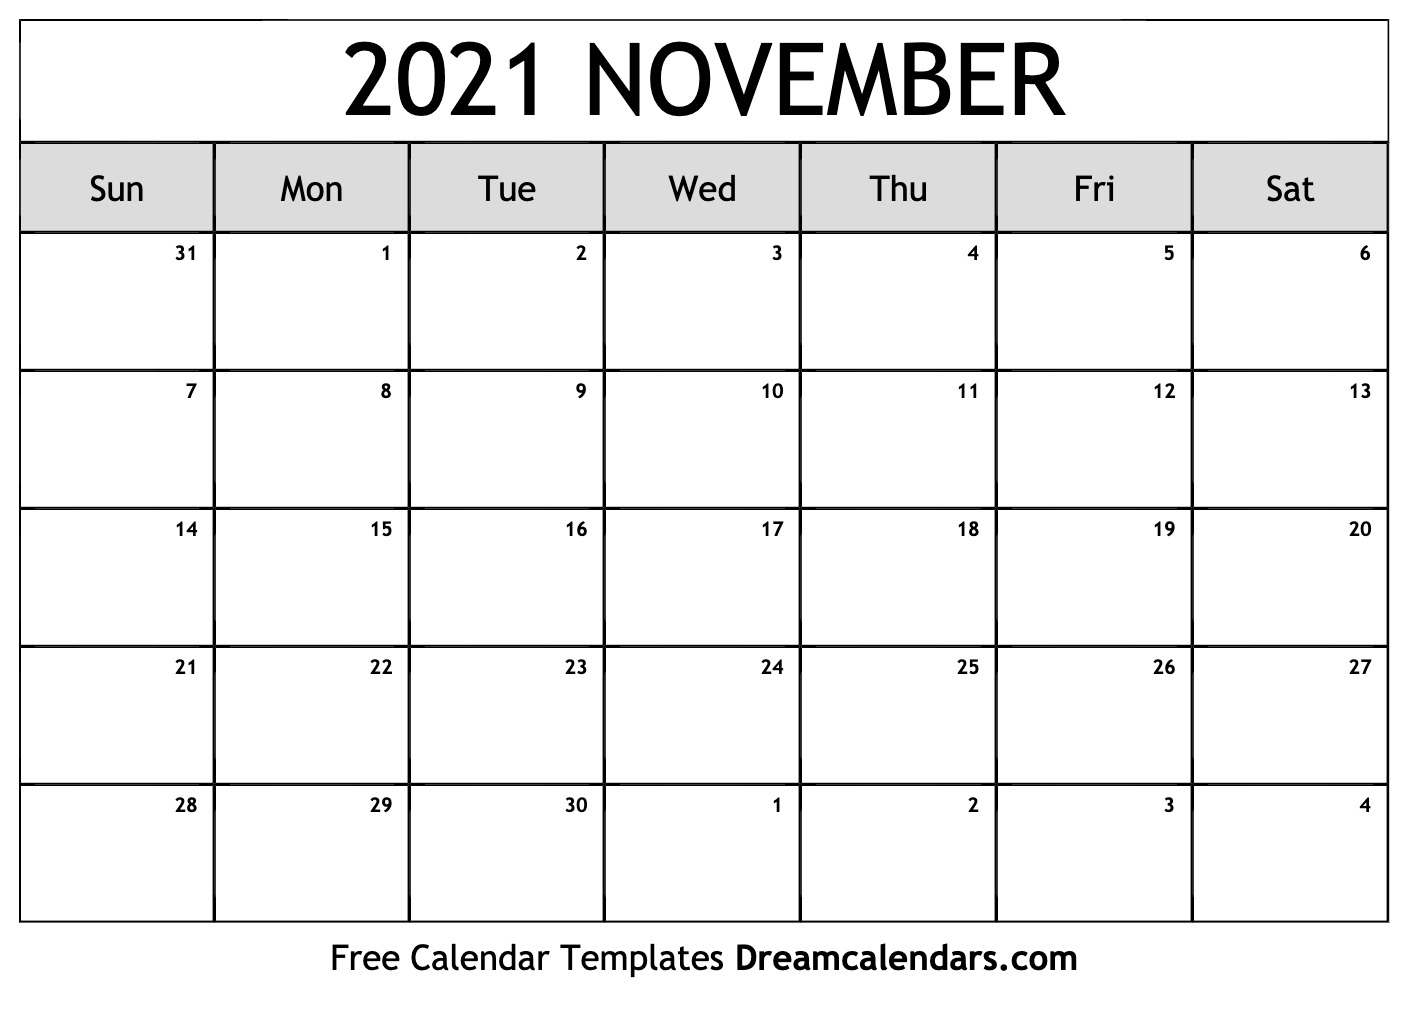 Take November 2021 Calendar Template Event That I Can Type On